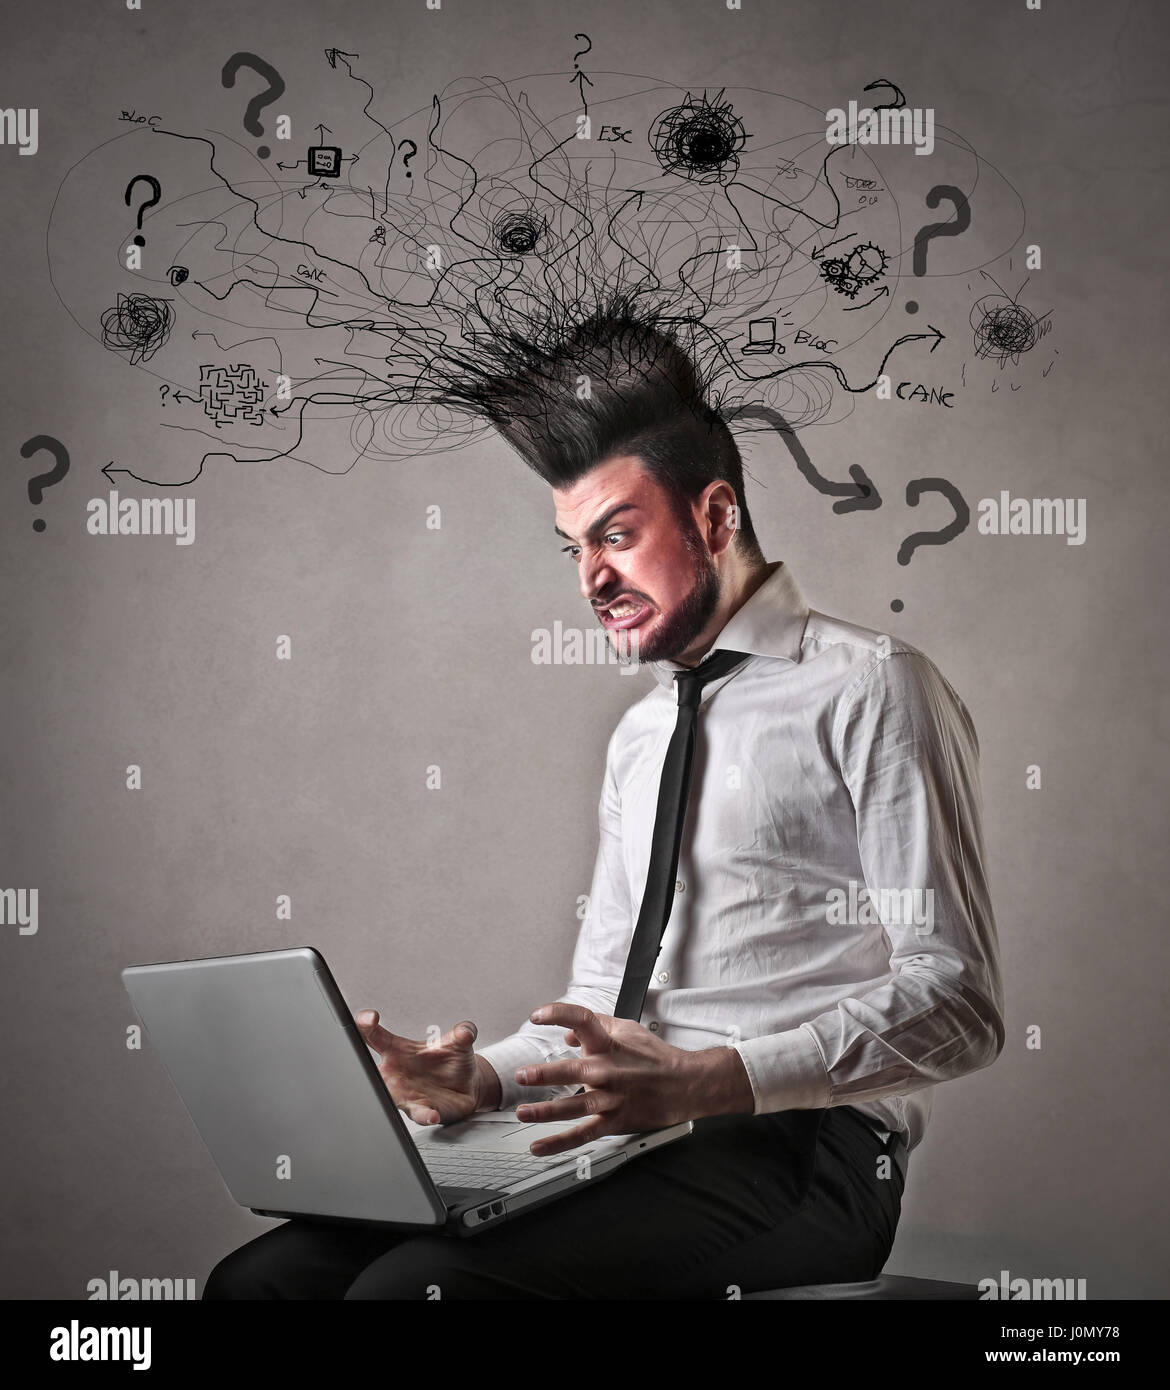 Man being mad in front of laptop - Stock Image